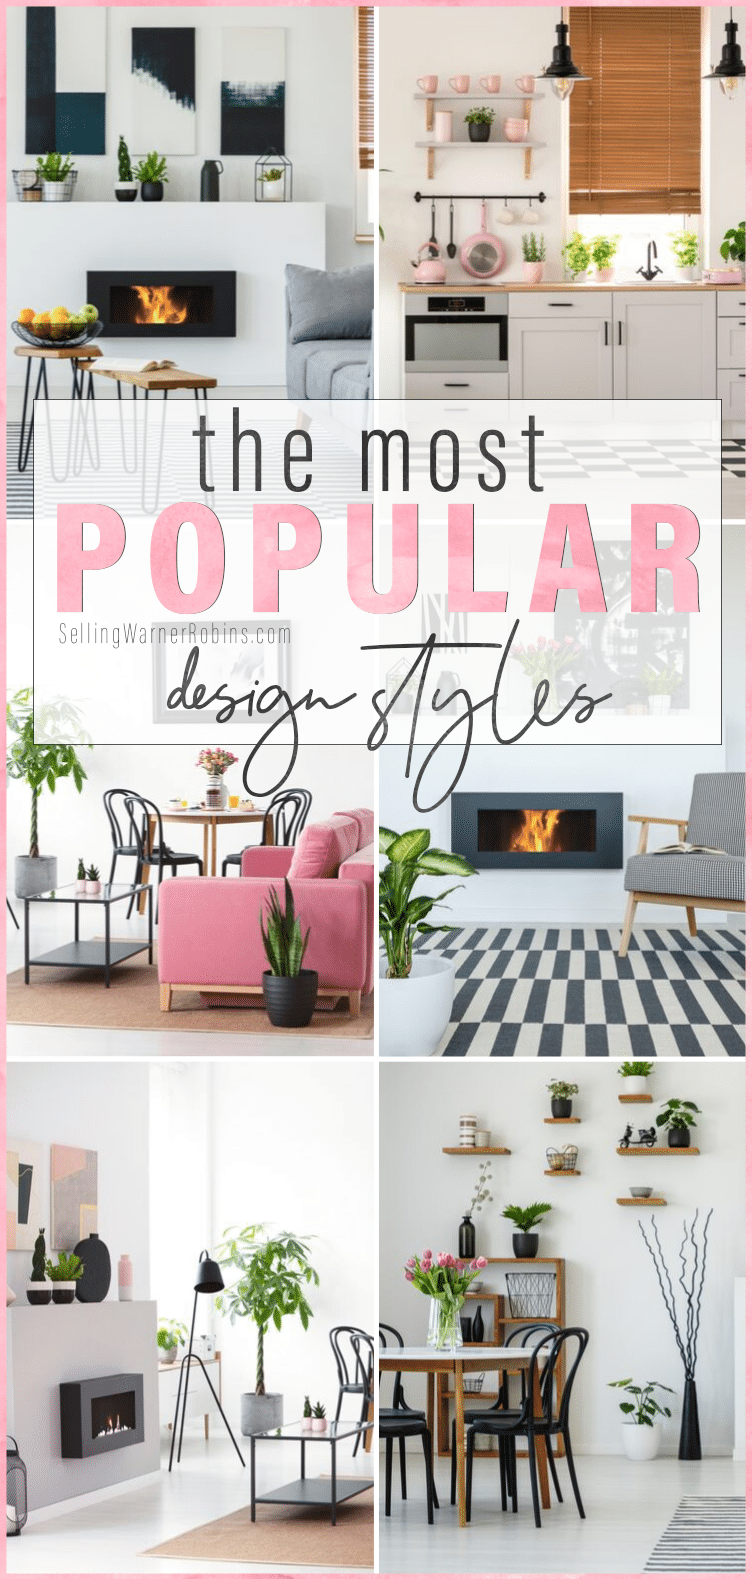 The Most Popular Home Design Styles